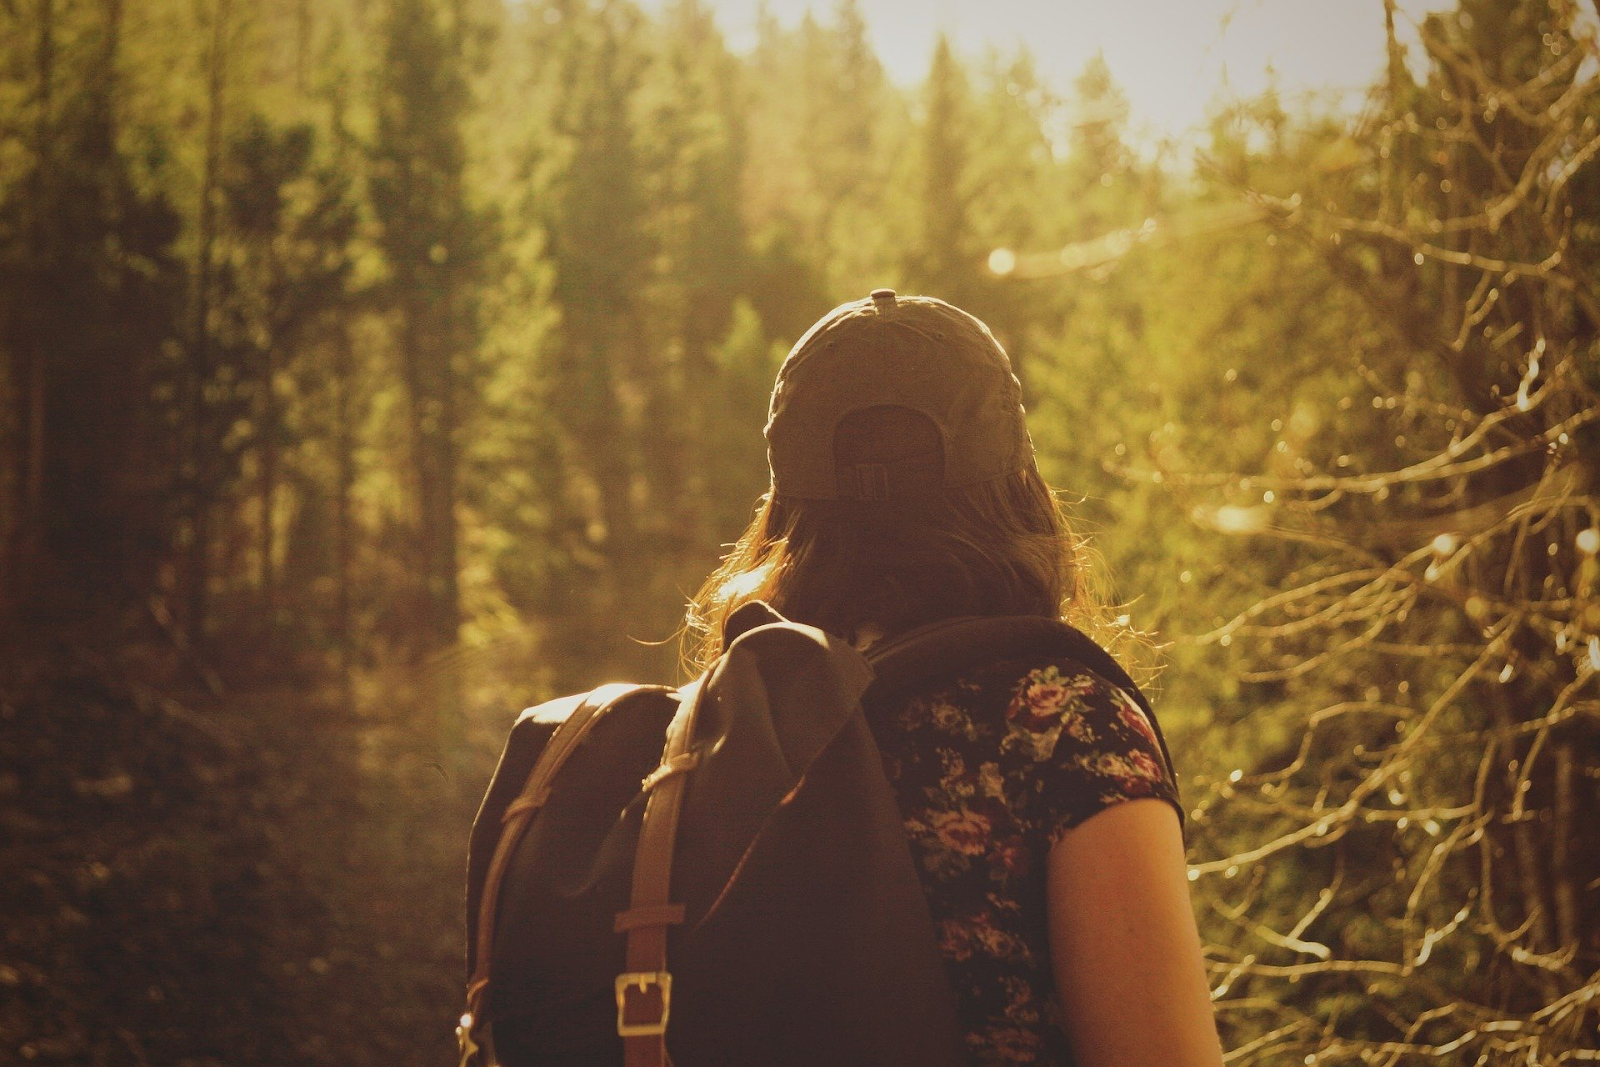 beautiful photo of woman on hiking journey from back angle